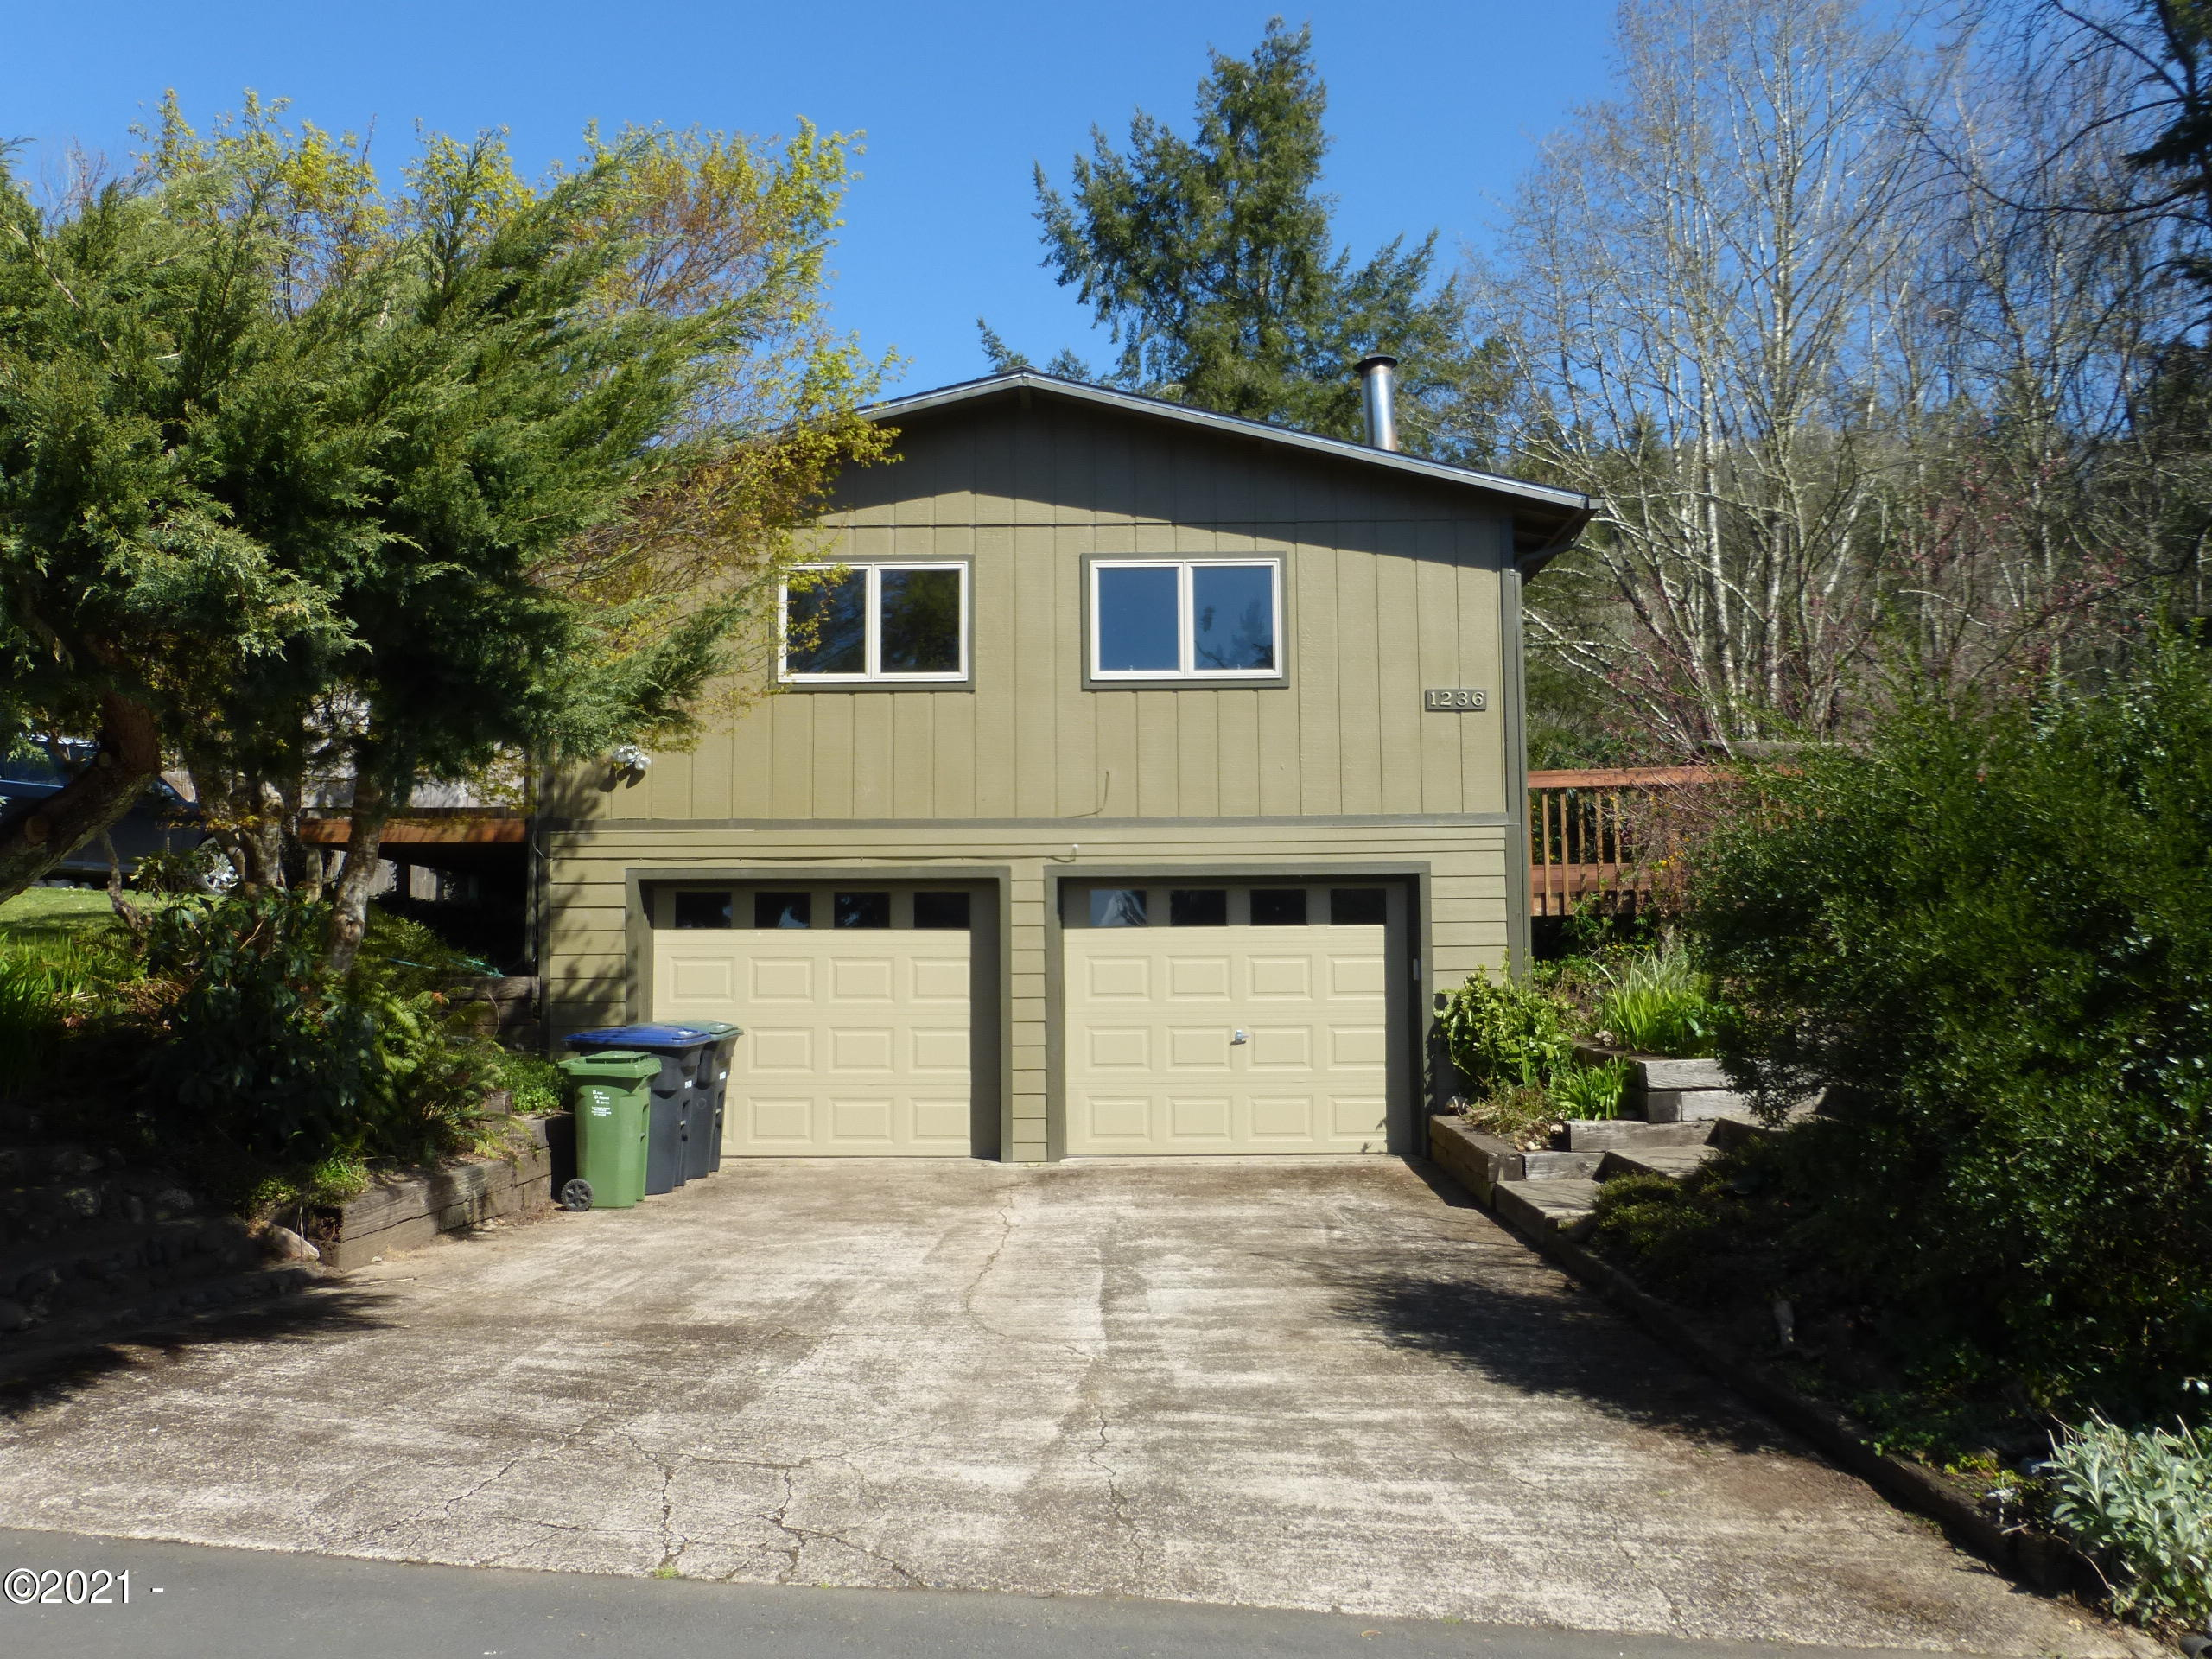 1236 SE Pine St, Toledo, OR 97391 - From the street